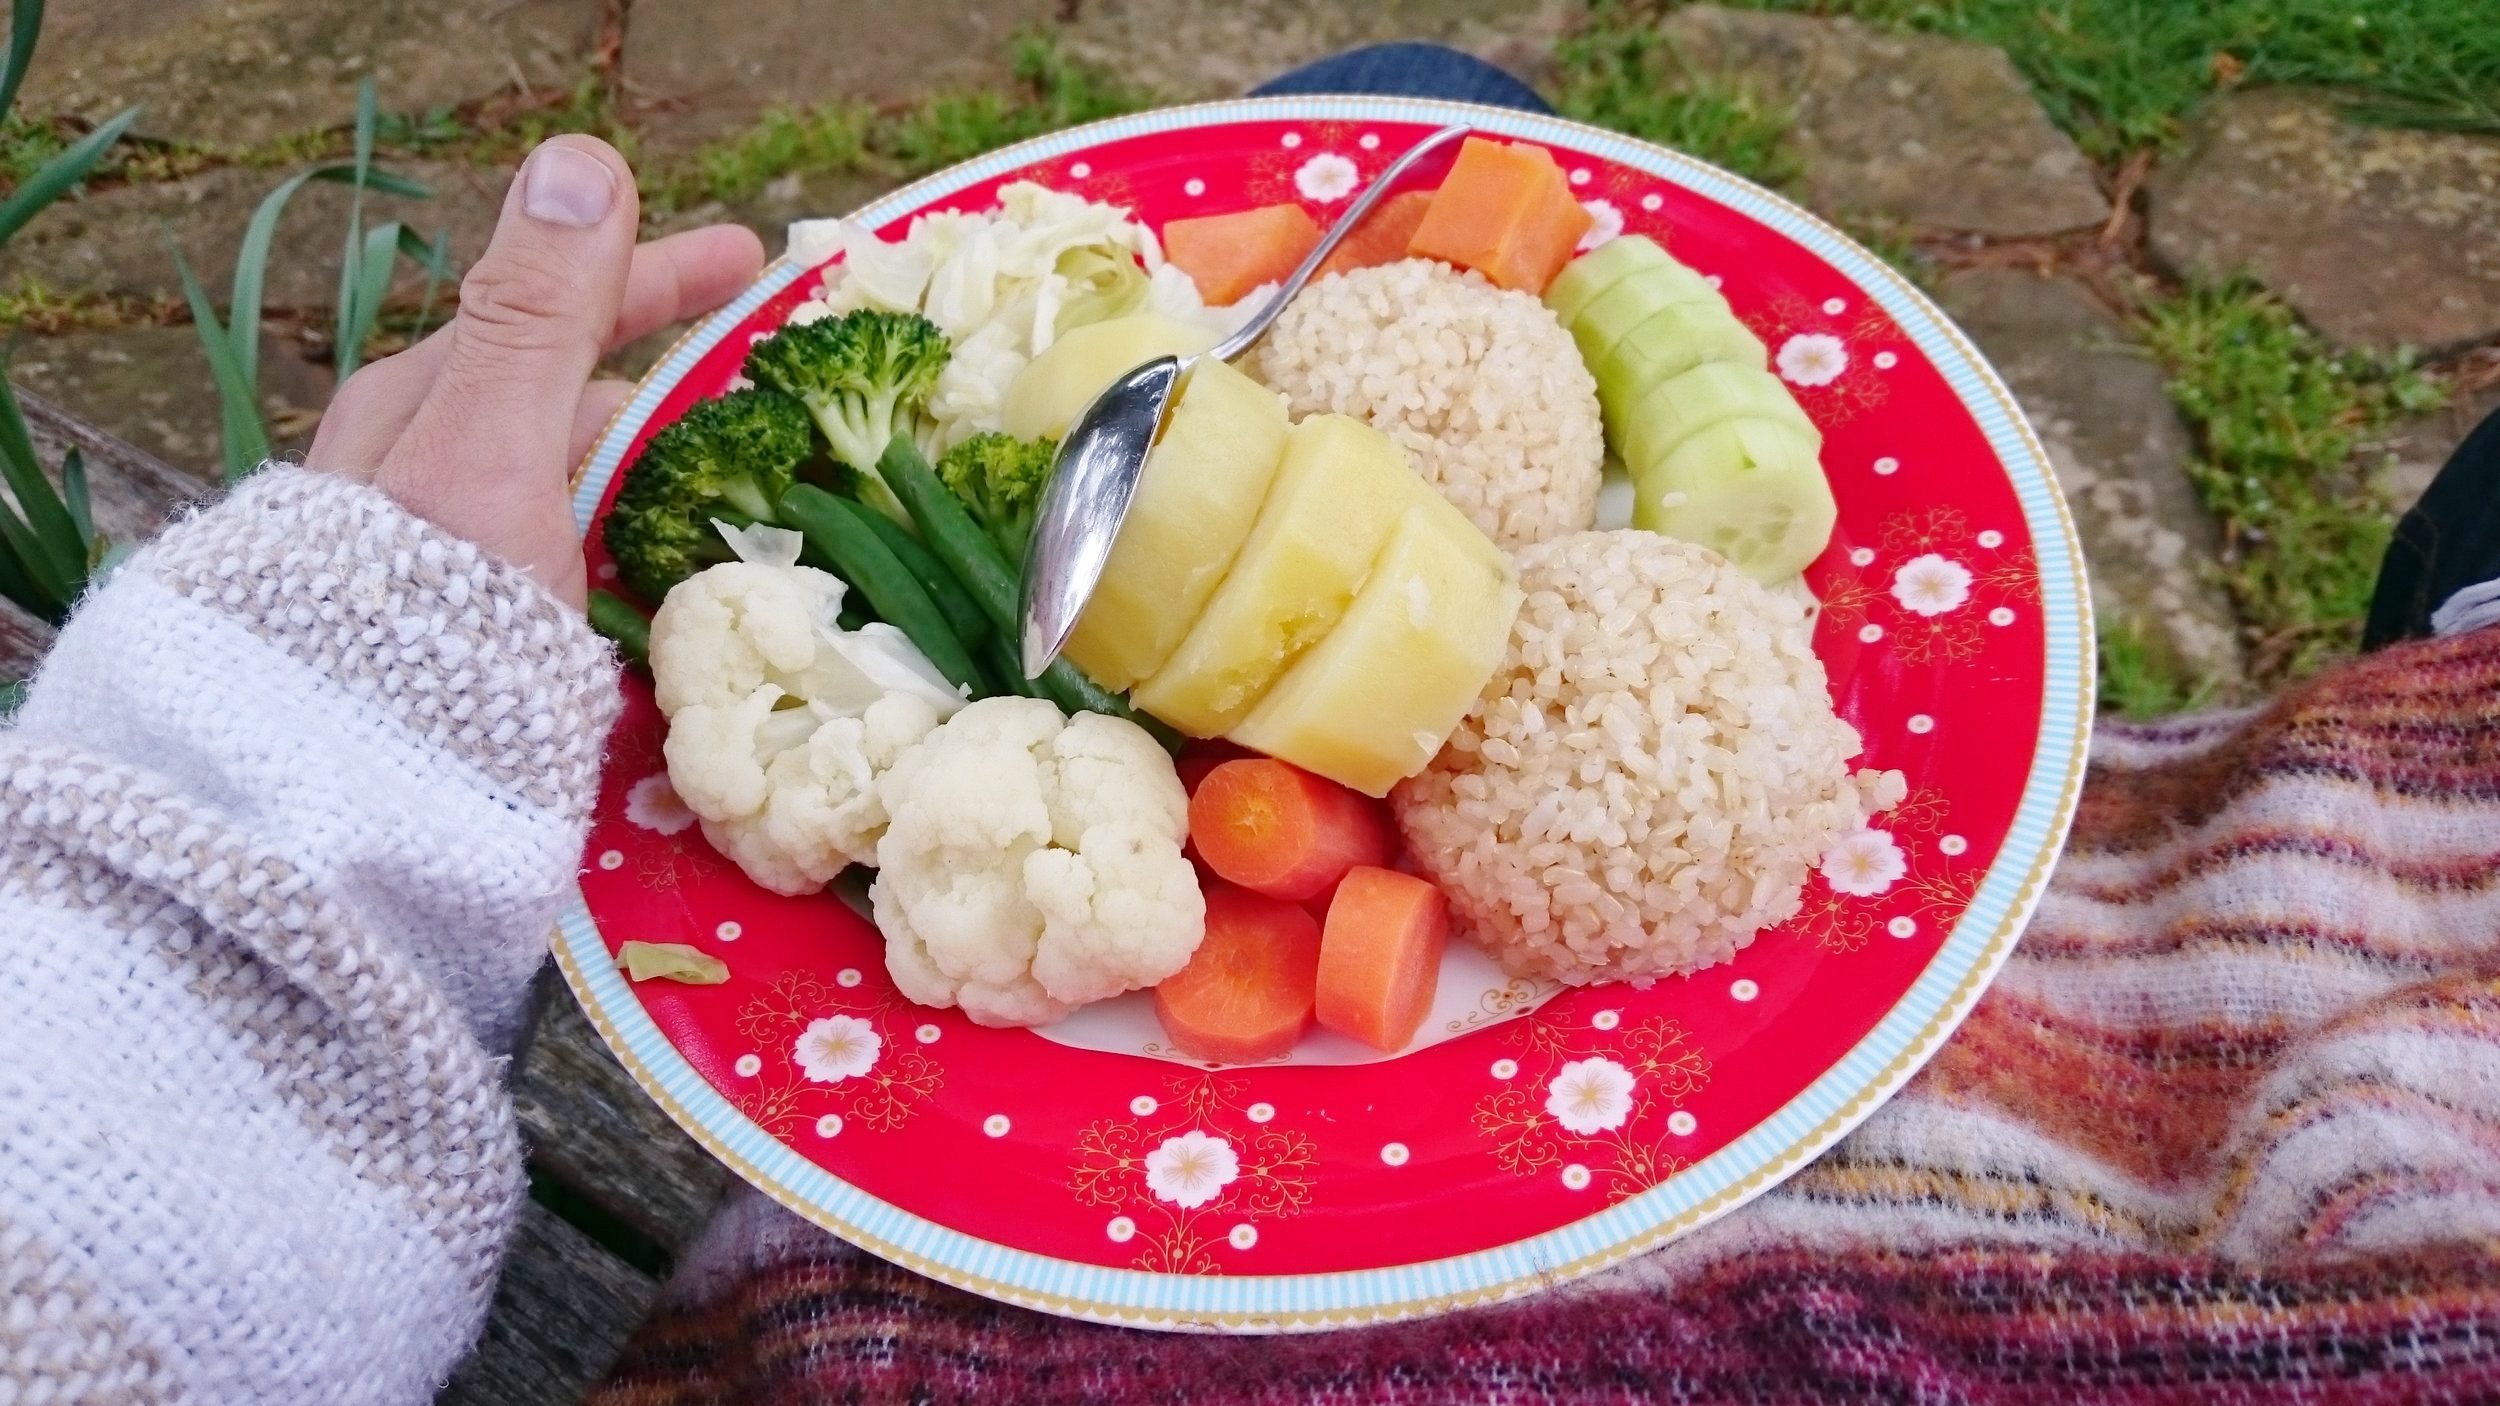 The standard meal of La Dieta: steamed vegetables and rice, Without any salt, oils or spices.  surprisingly, this became tastier as time went on.